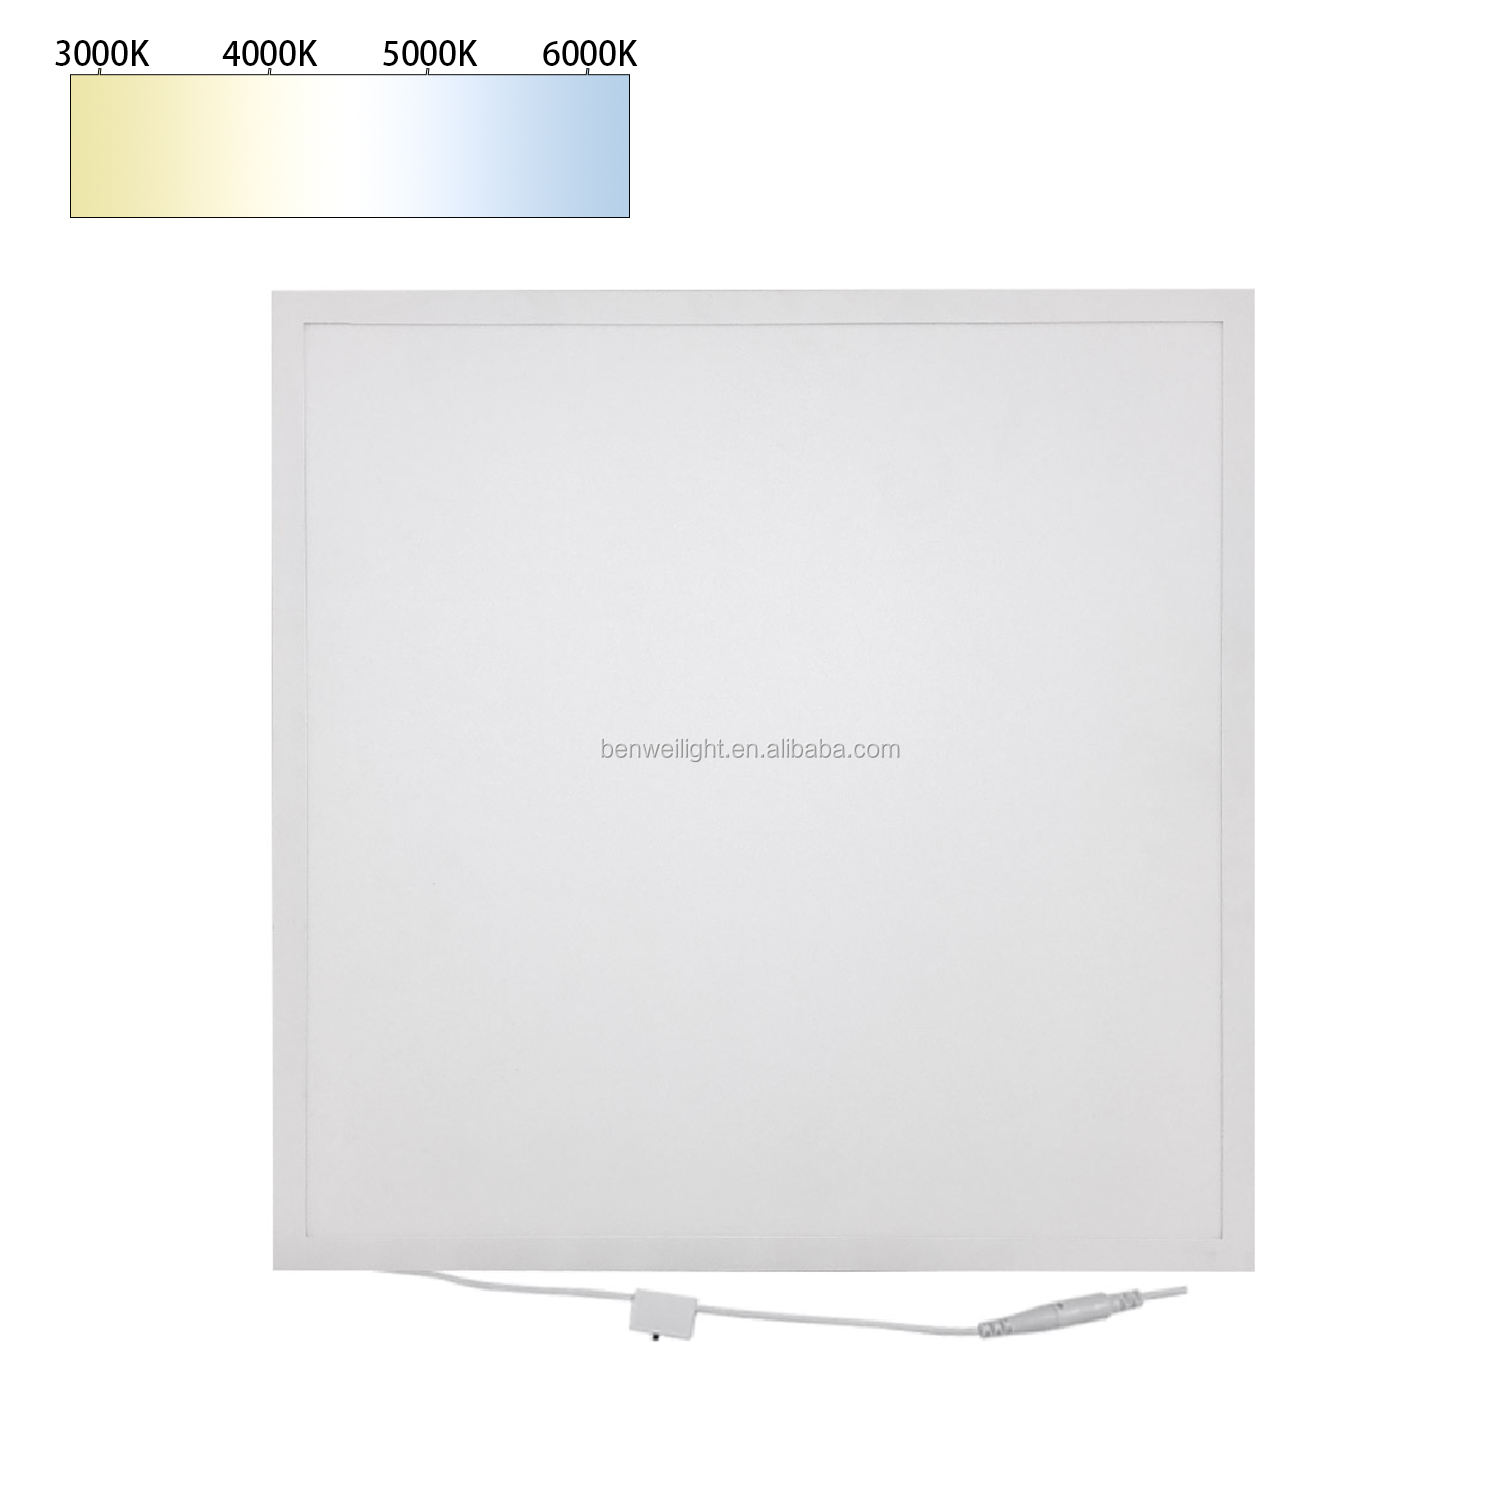 CRI>95 Photographic Panel Light 36W 40W Flicker Free LED Flat Panel Light for Ceiling High CRI 600x600 LED Film Panels